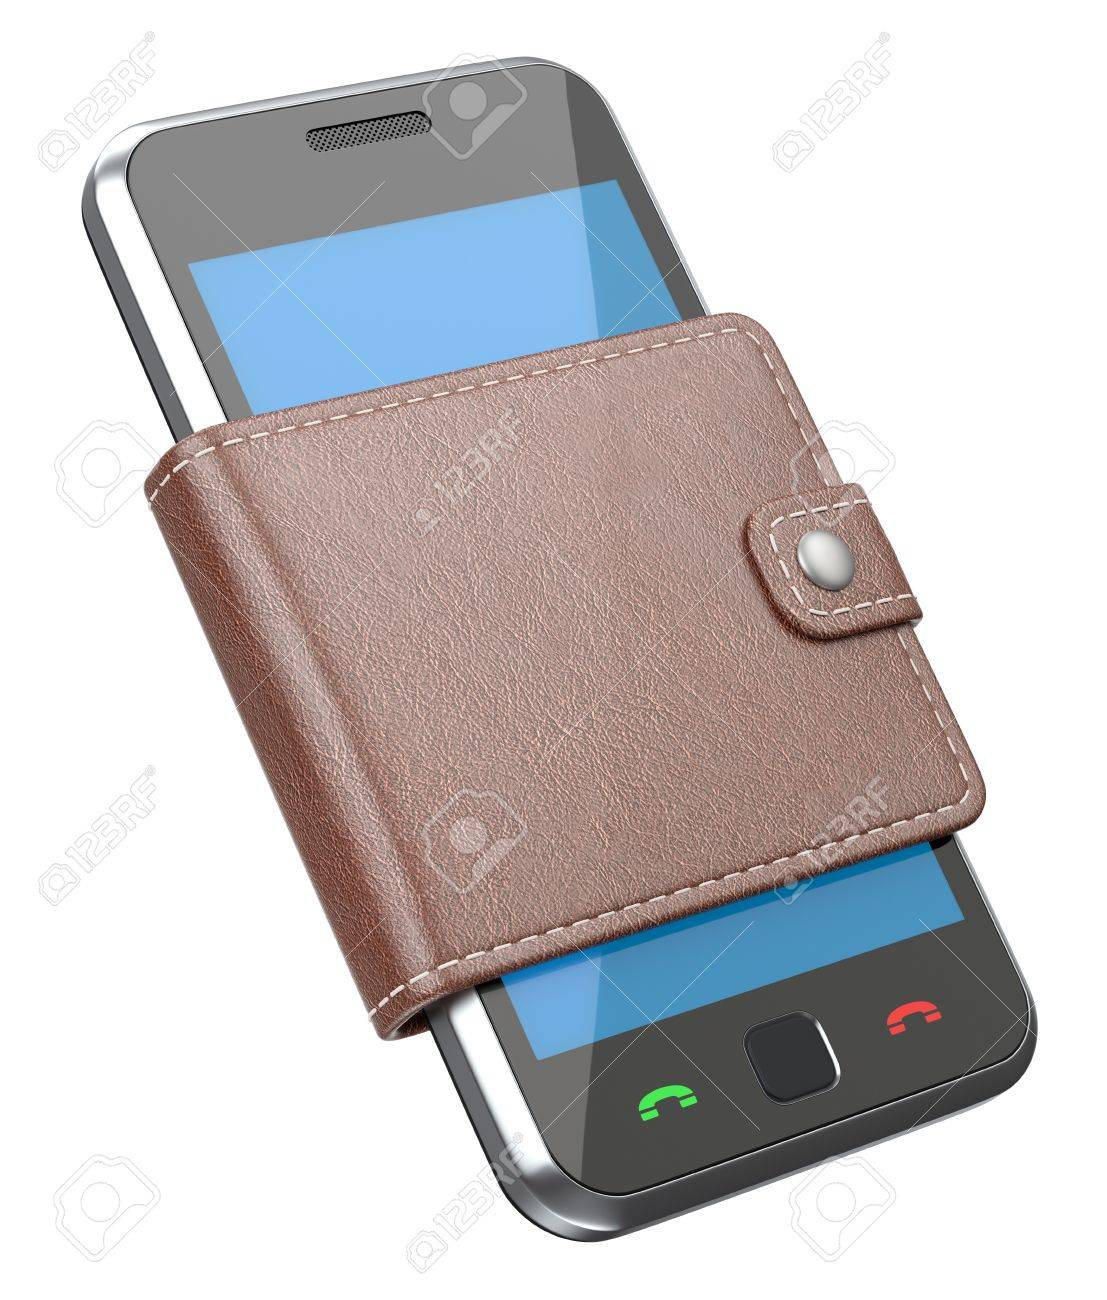 Mobile phone in the wallet Stock Photo - 12000630